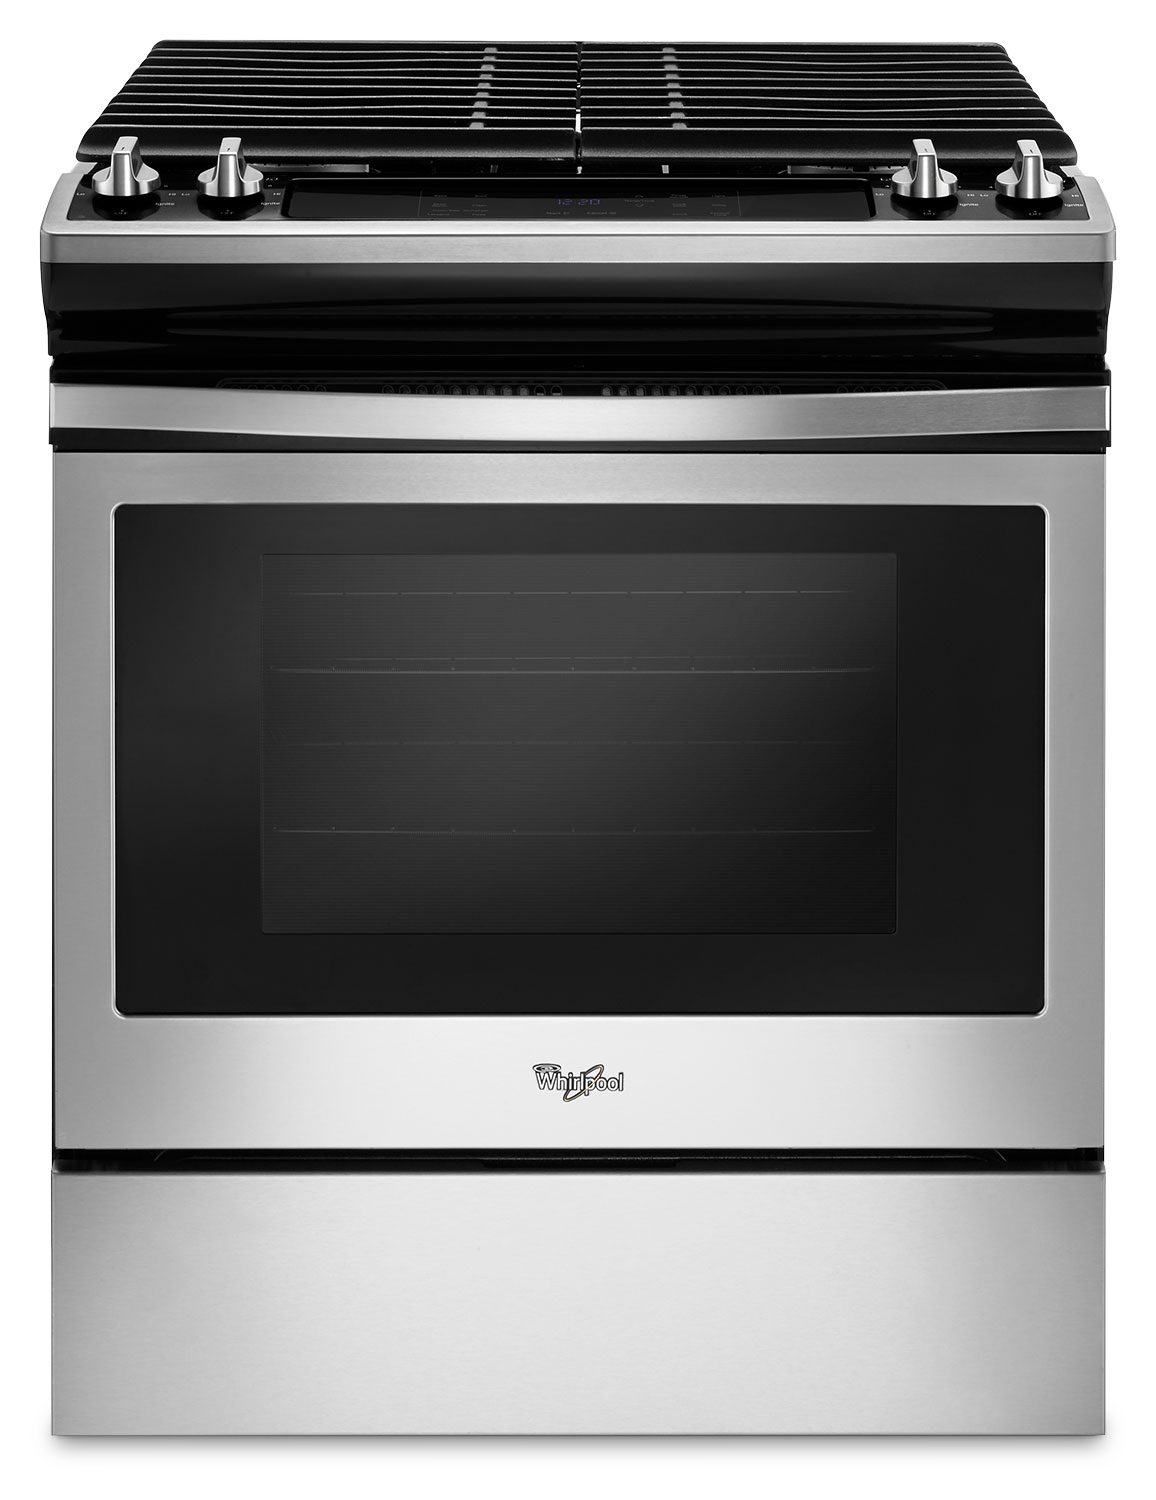 Whirlpool Stainless Steel Slide In Gas Range 48 Cu Ft